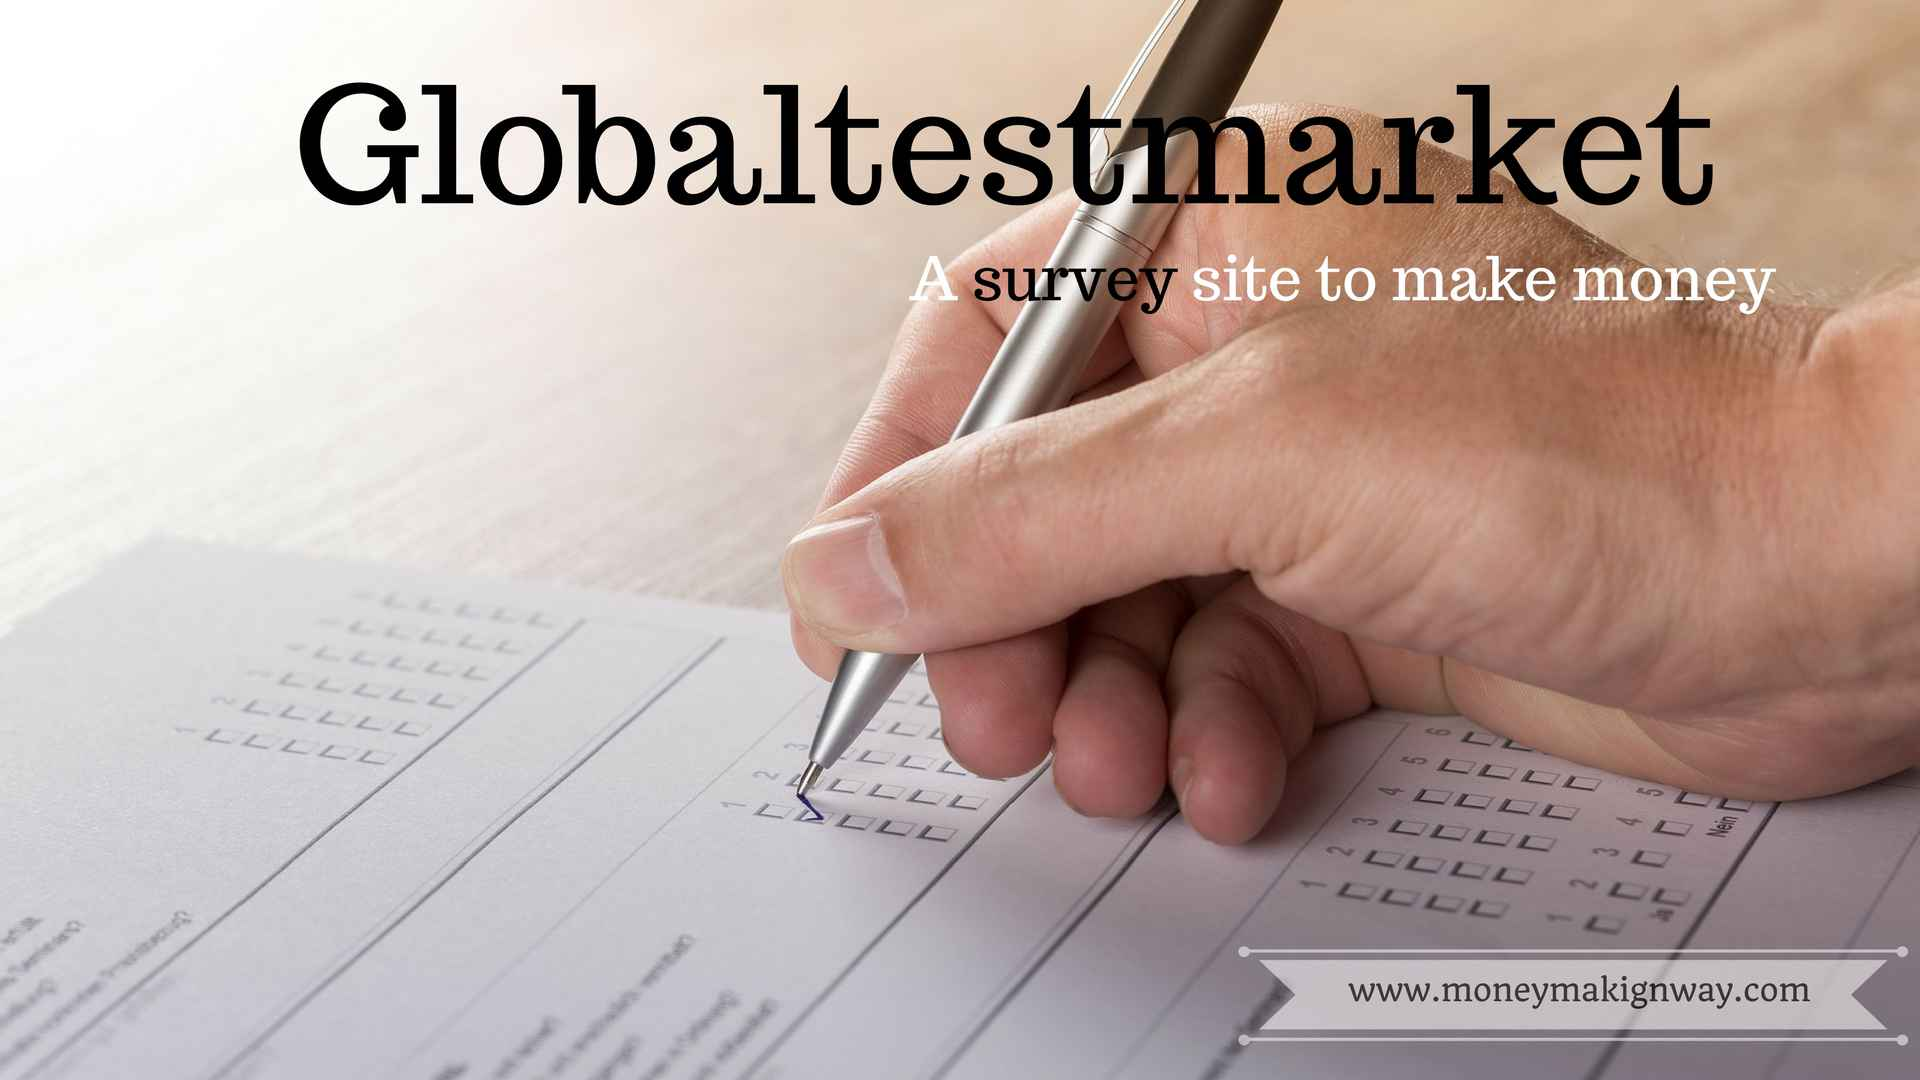 Globaltestmarket: reviews and role in modern marketing research